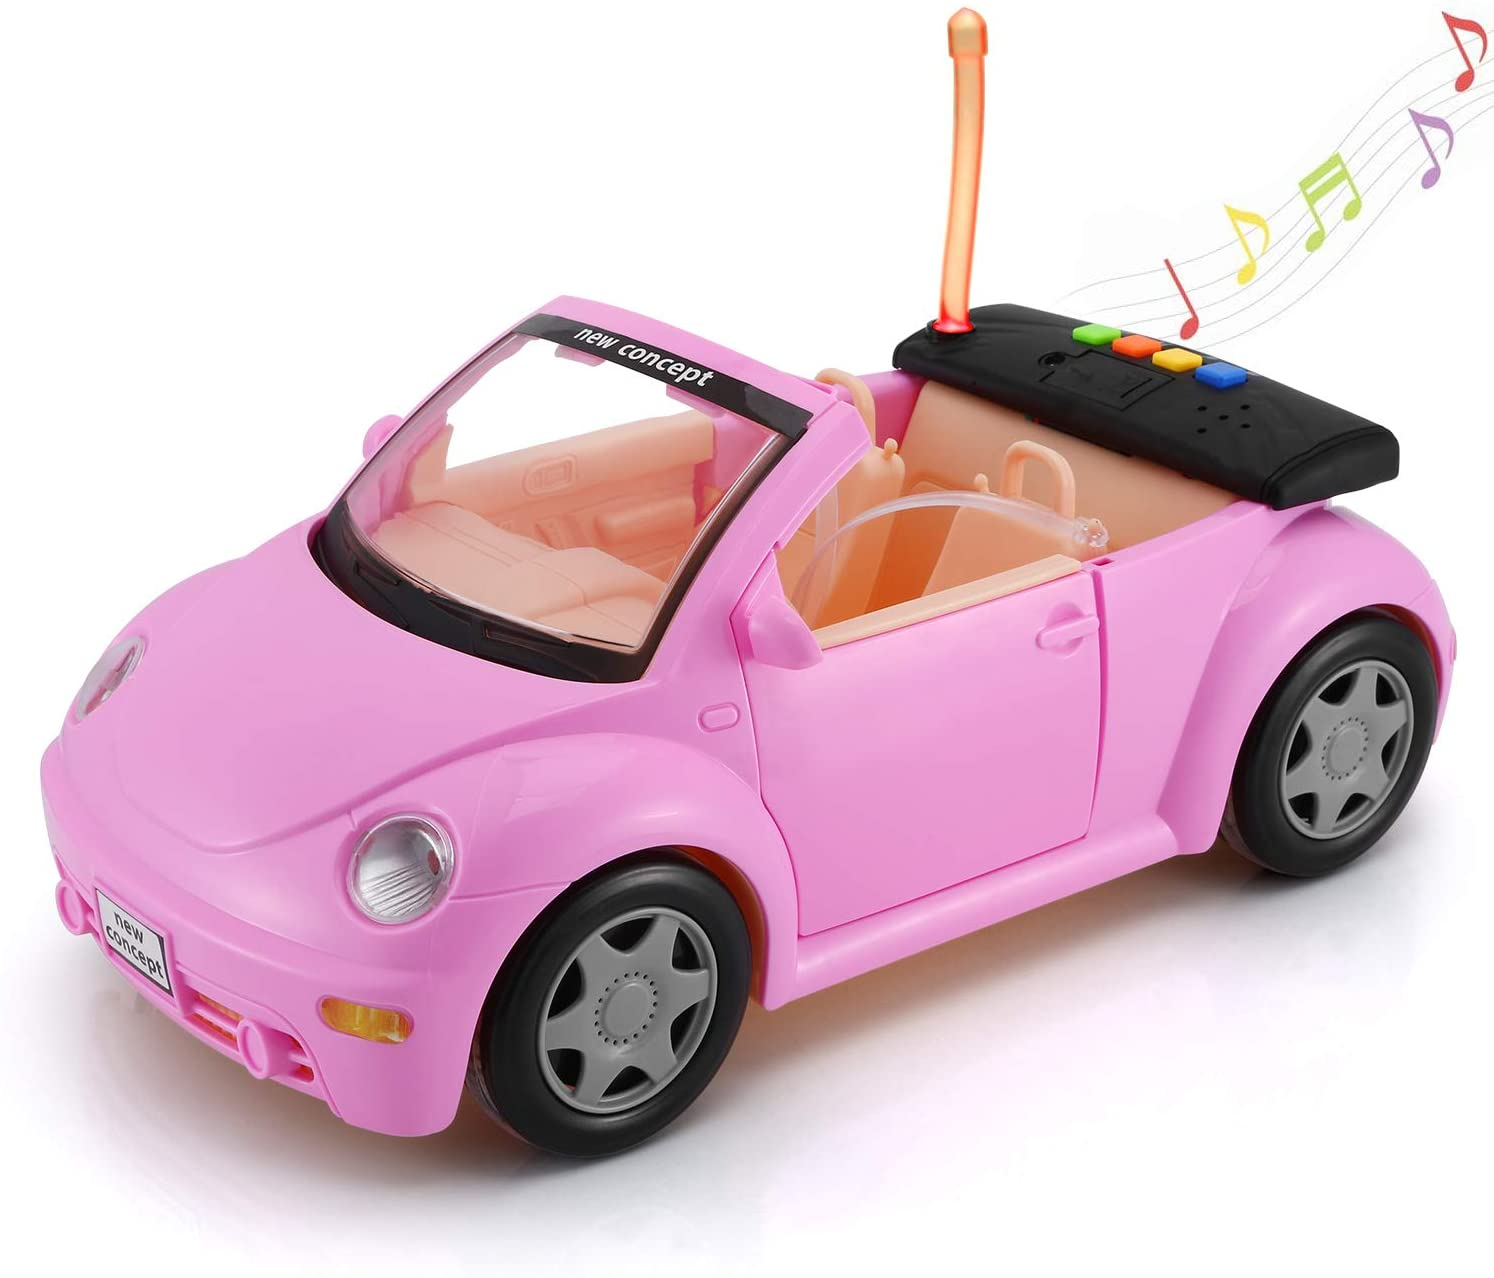 KeepRunning Convertible Car for Dolls (Great for Small Dolls), Glittering Magenta Convertible Doll Vehicle with Working Seat Belts